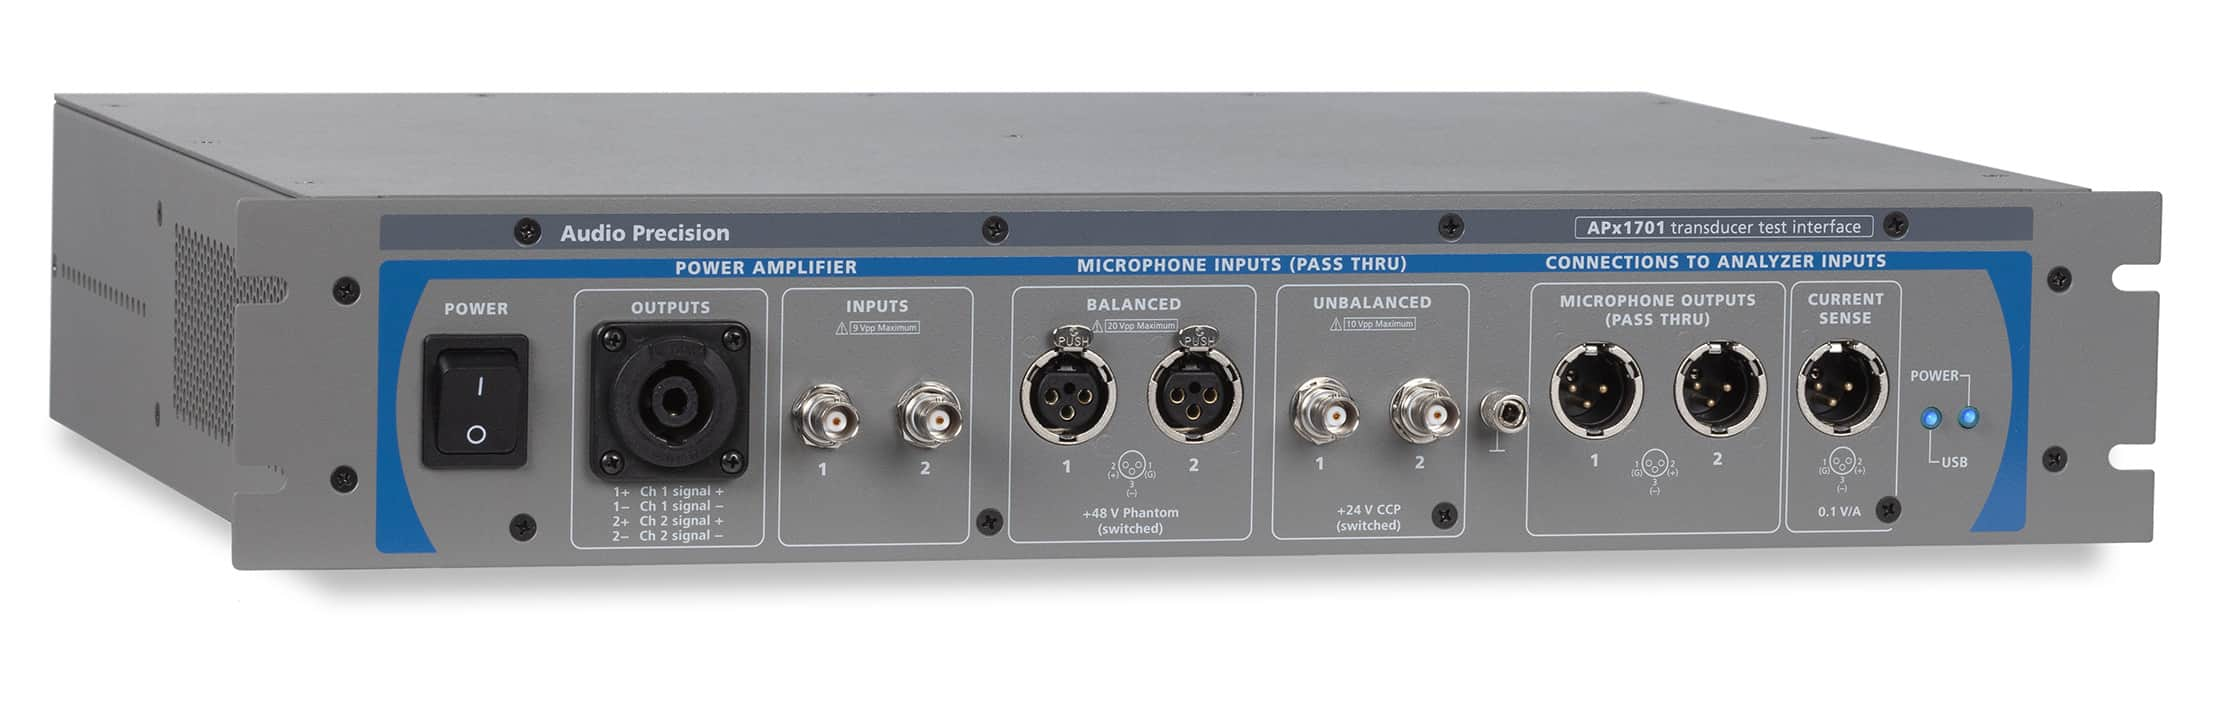 The APx1701 Transducer Test Interface offers low noise, low distortion and flat response performance in support of loudspeaker, headphone and microphone testing